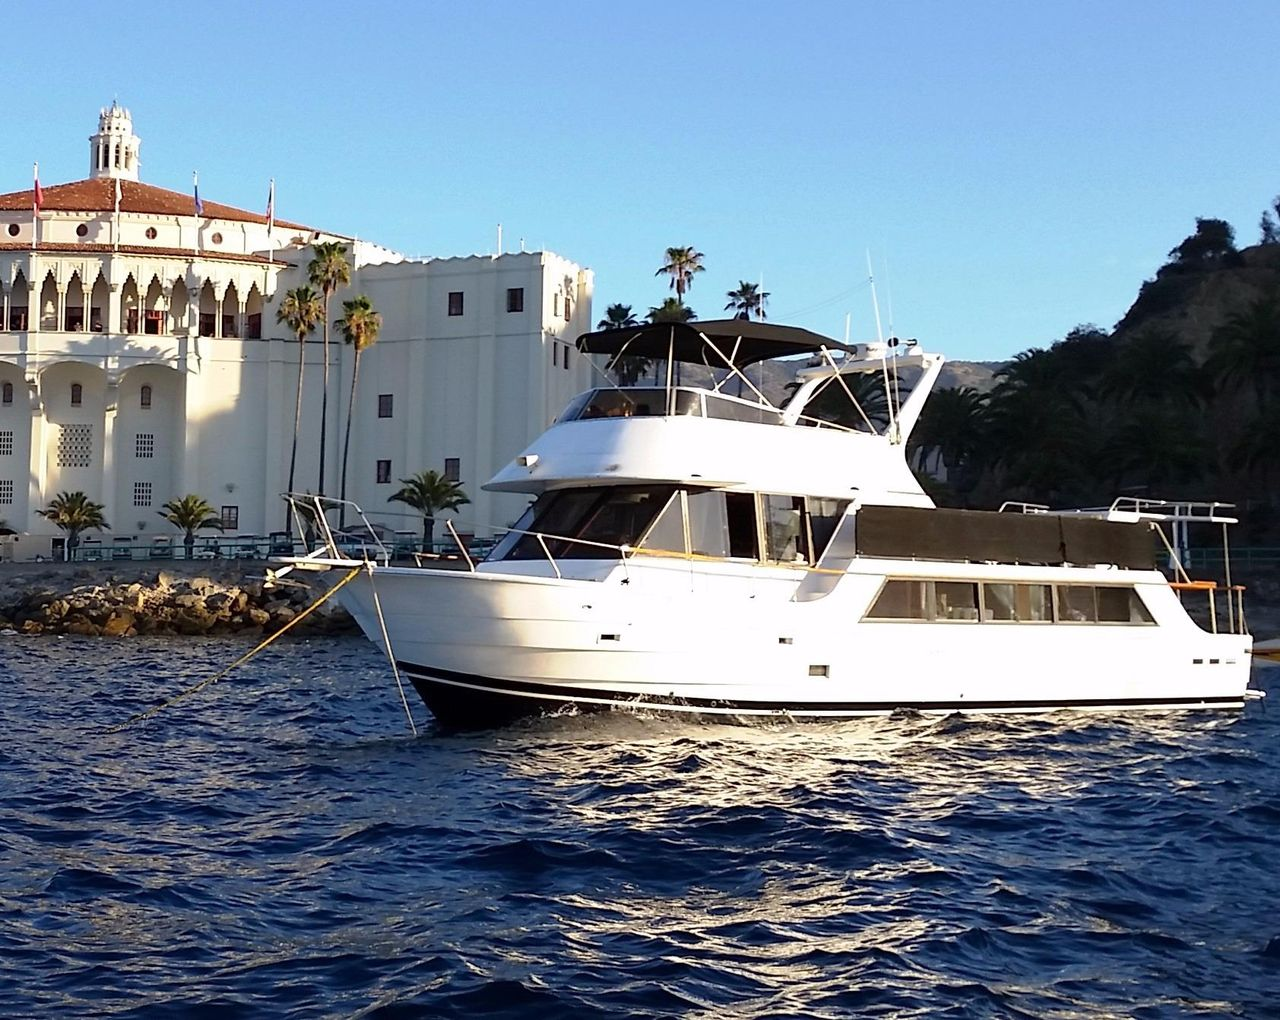 1981 Used Gold Coast Coastal Cruiser Motor Yacht For Sale - $79,000